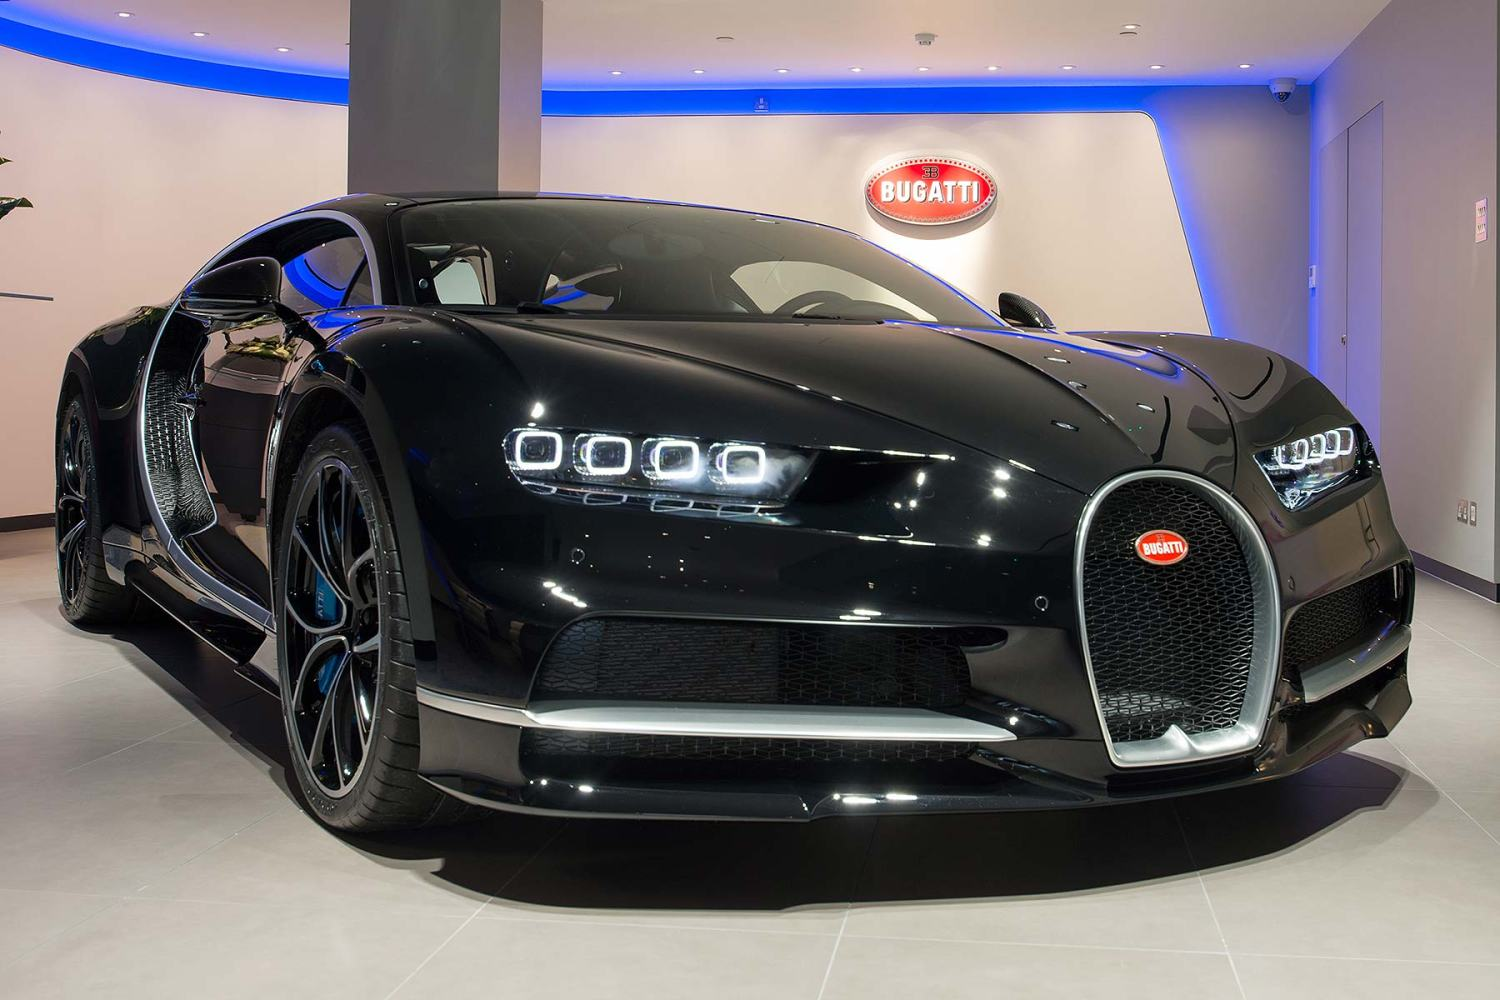 Bugatti London car dealer opens in Mayfair